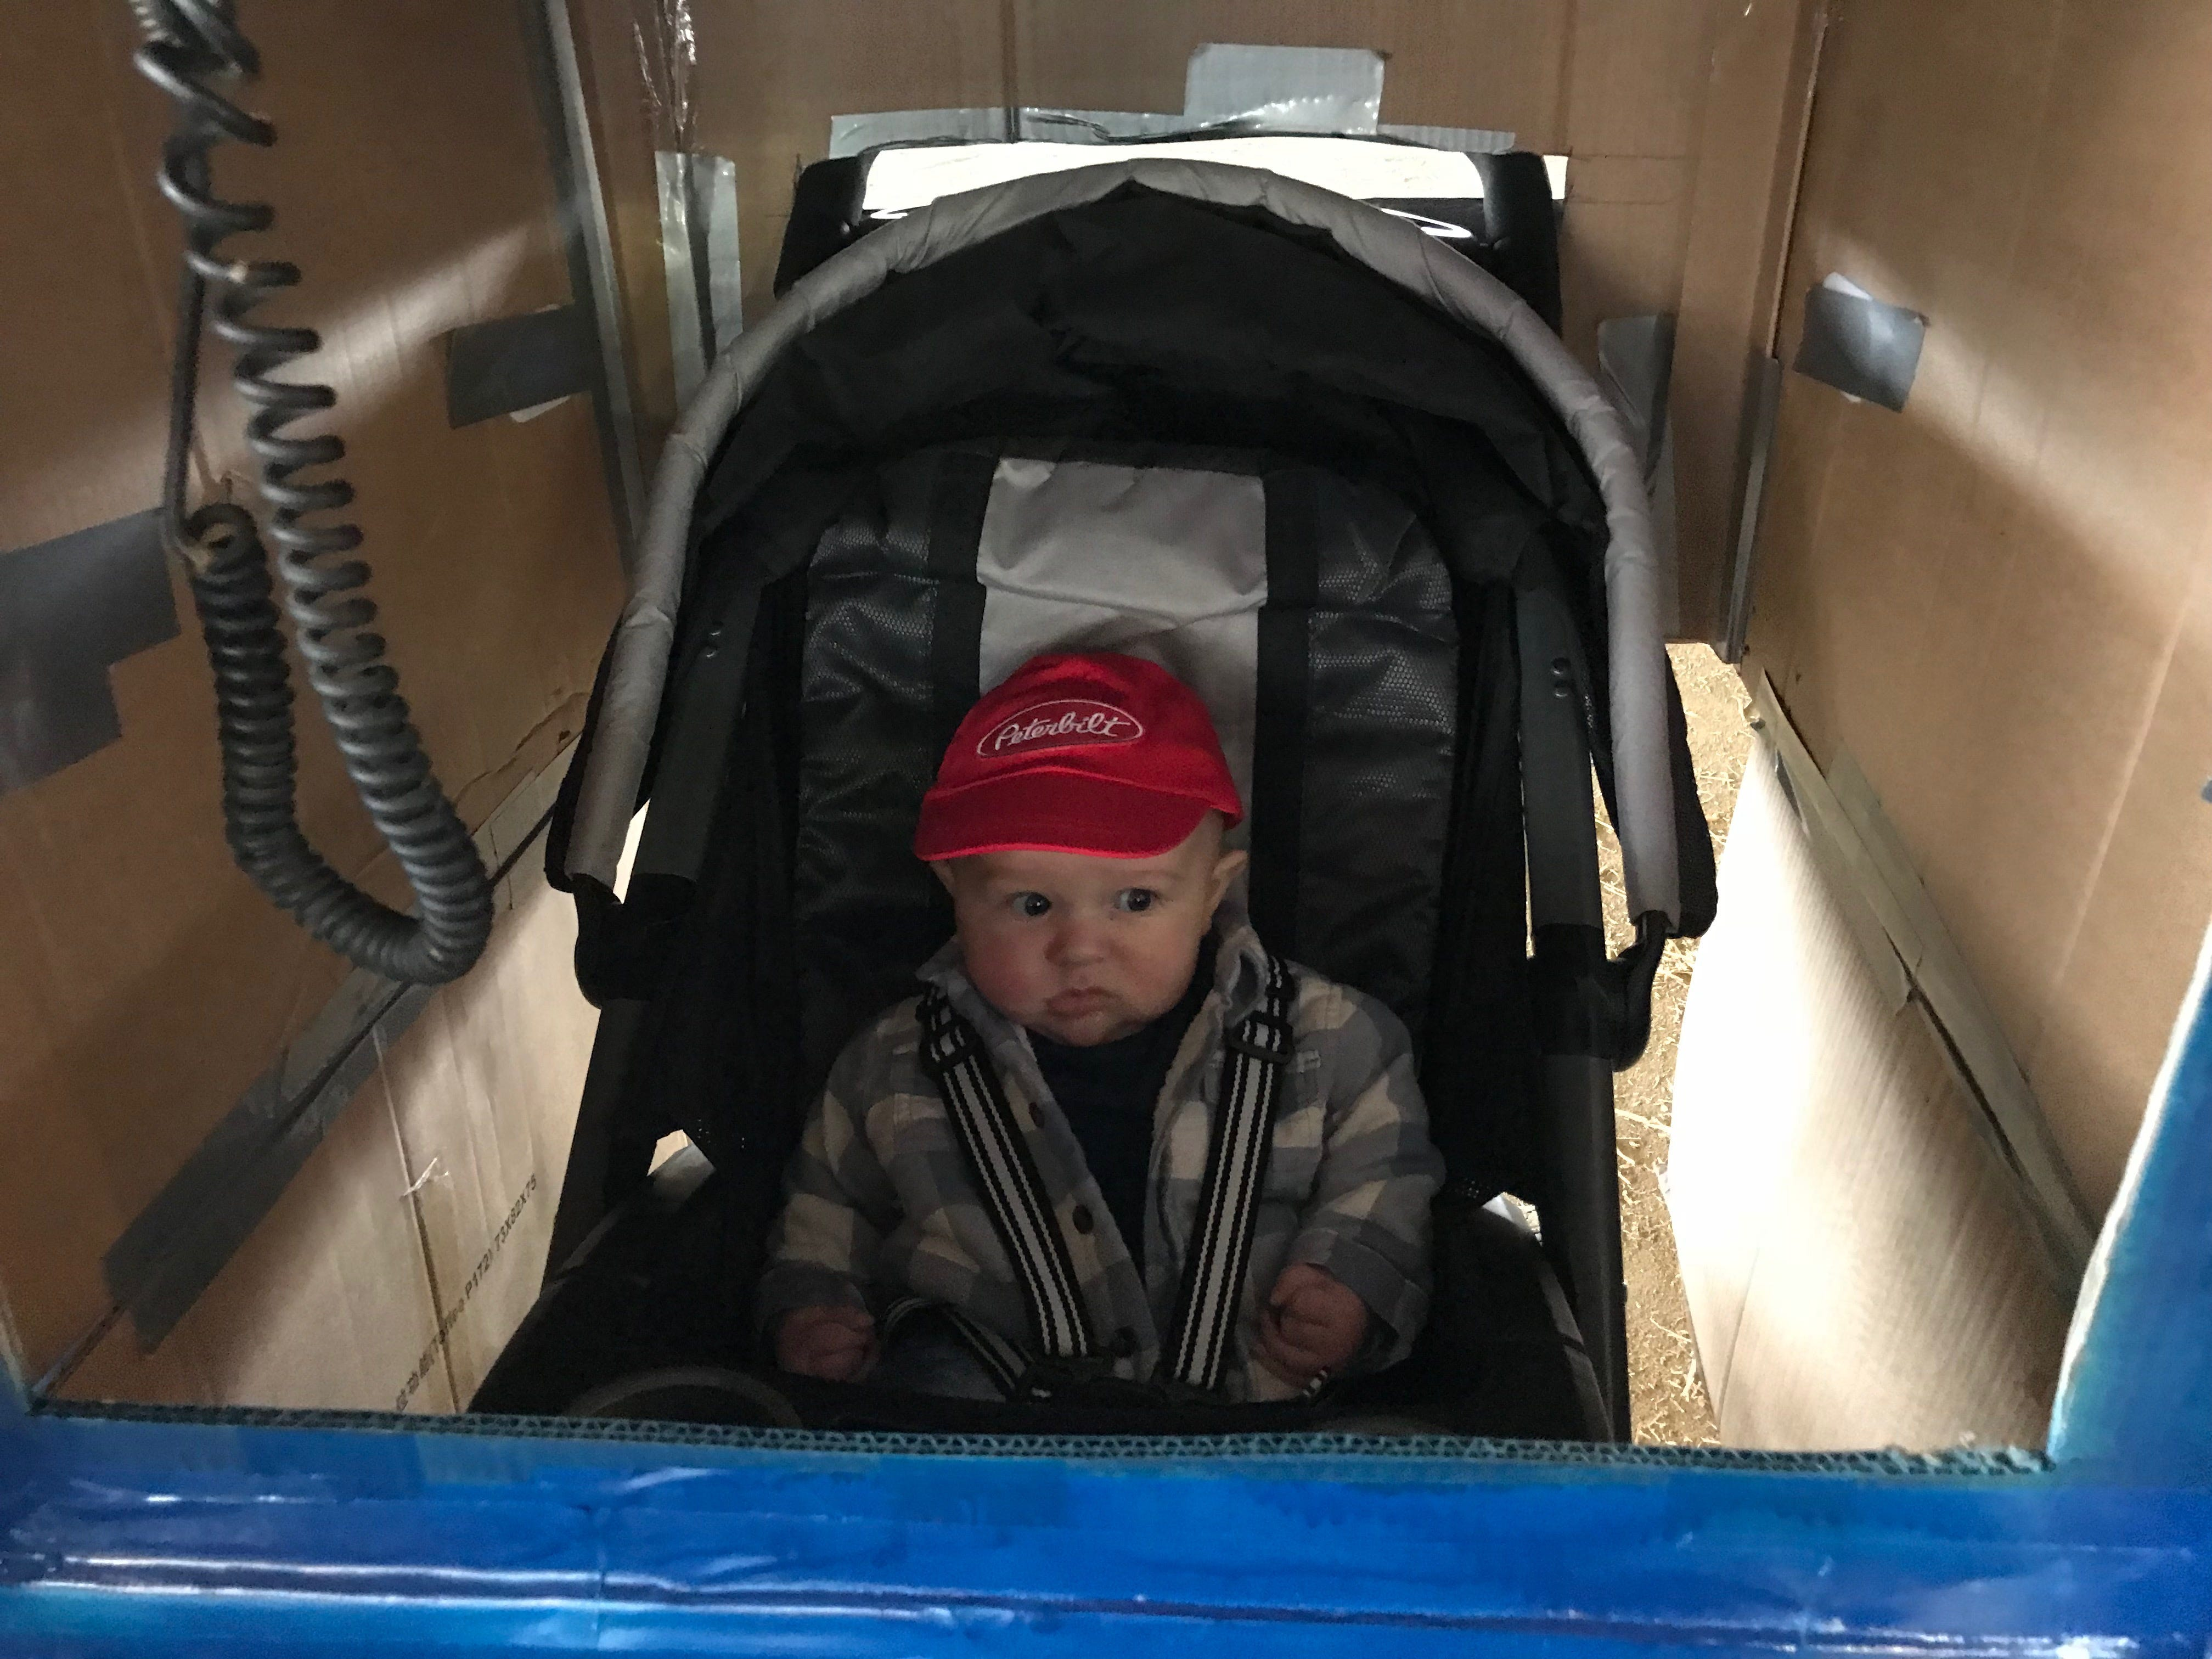 This trucker's just not sure about this whole stroller turned into Peterbilt truck thing at the first Great Delaware Pumpkin Carve.